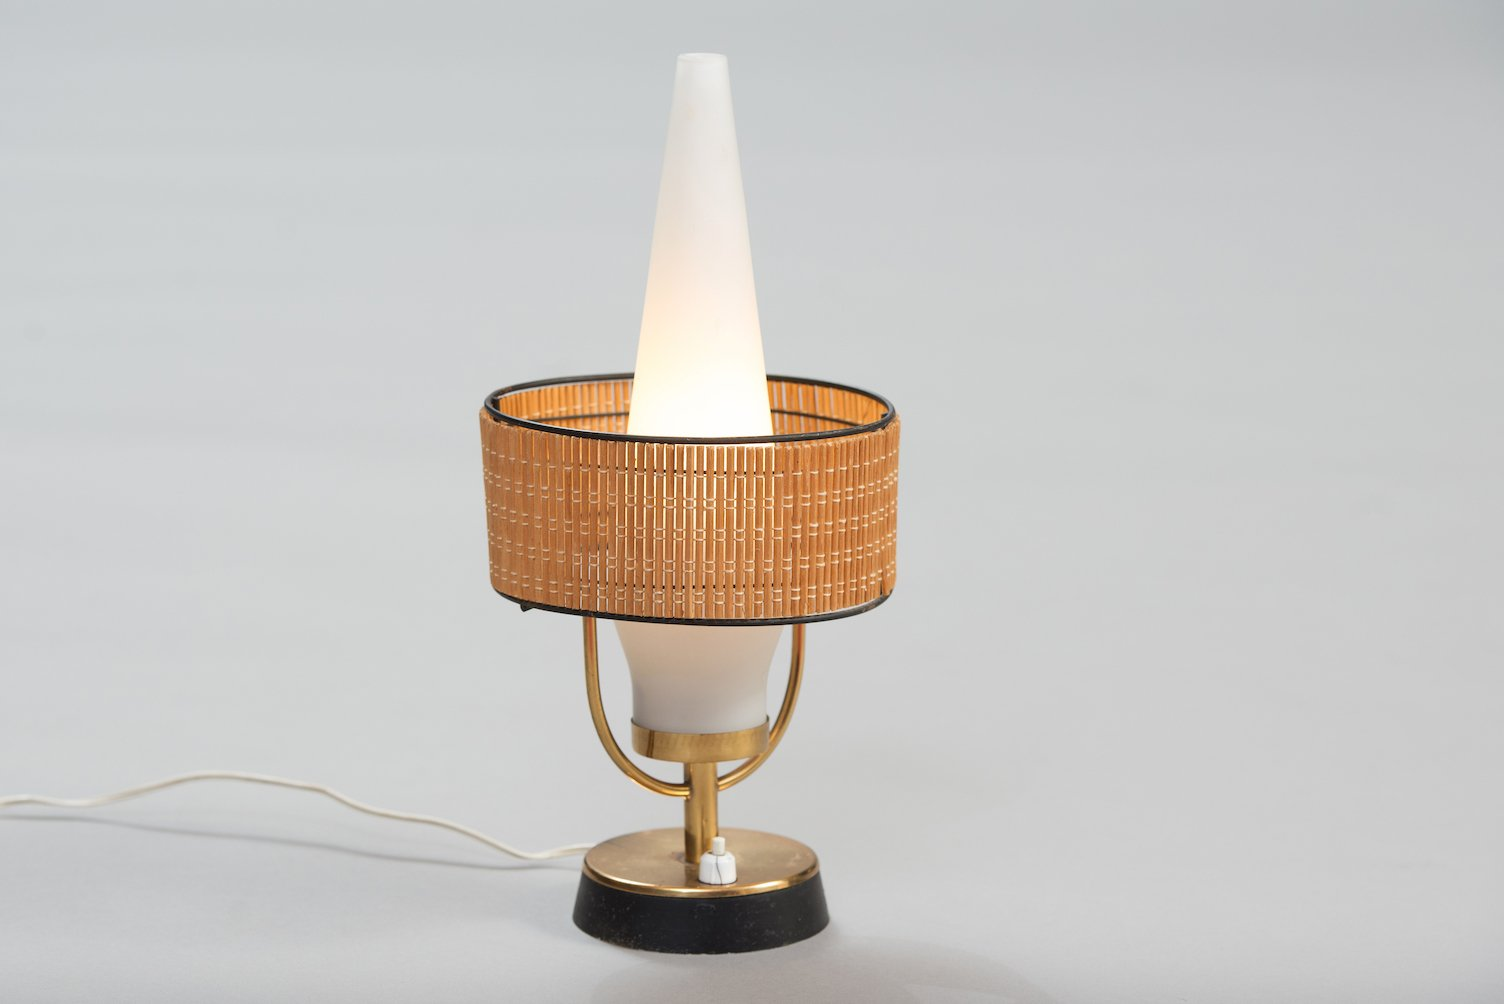 Vintage italian table lamp with frosted glass shade for sale at pamono vintage italian table lamp with frosted glass shade mozeypictures Choice Image